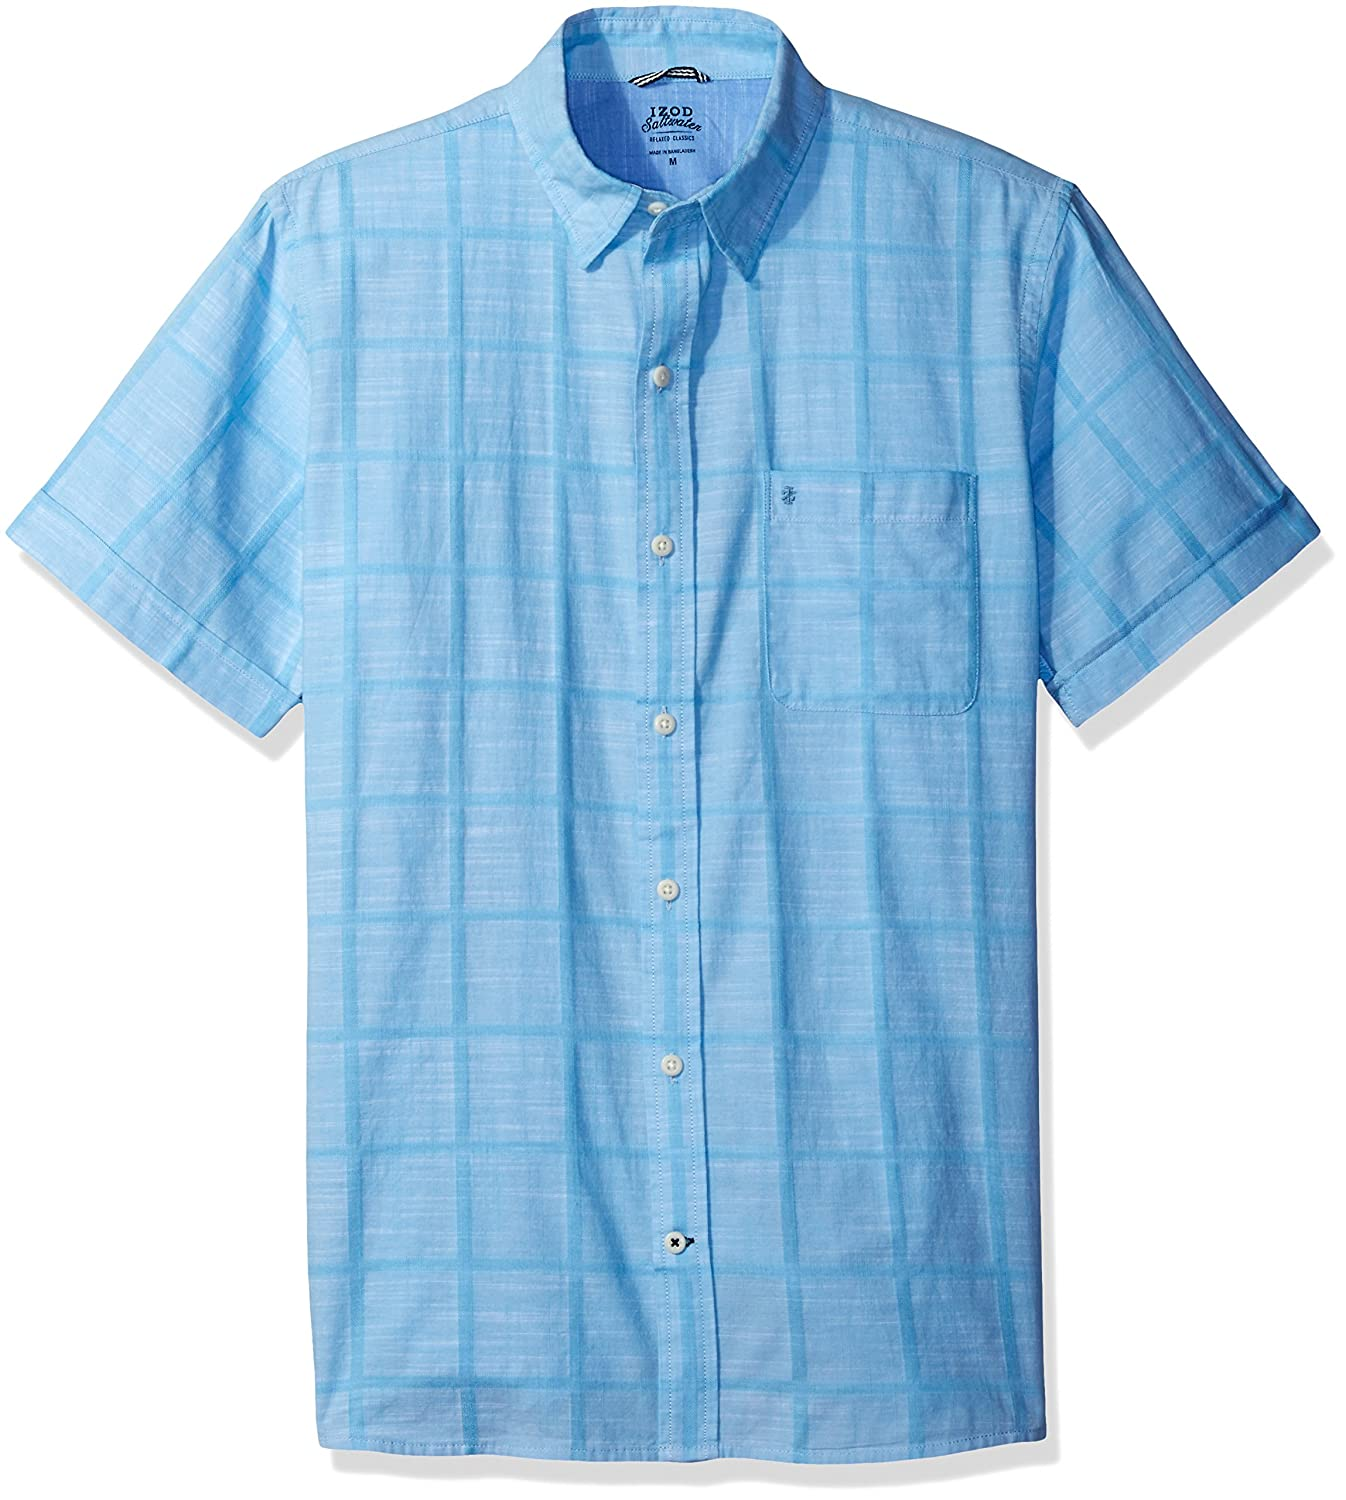 Izod Men's Saltwater Dockside Chambray Windowpane Short Sleeve Shirt IZOD Men's Sportswear 82SW745